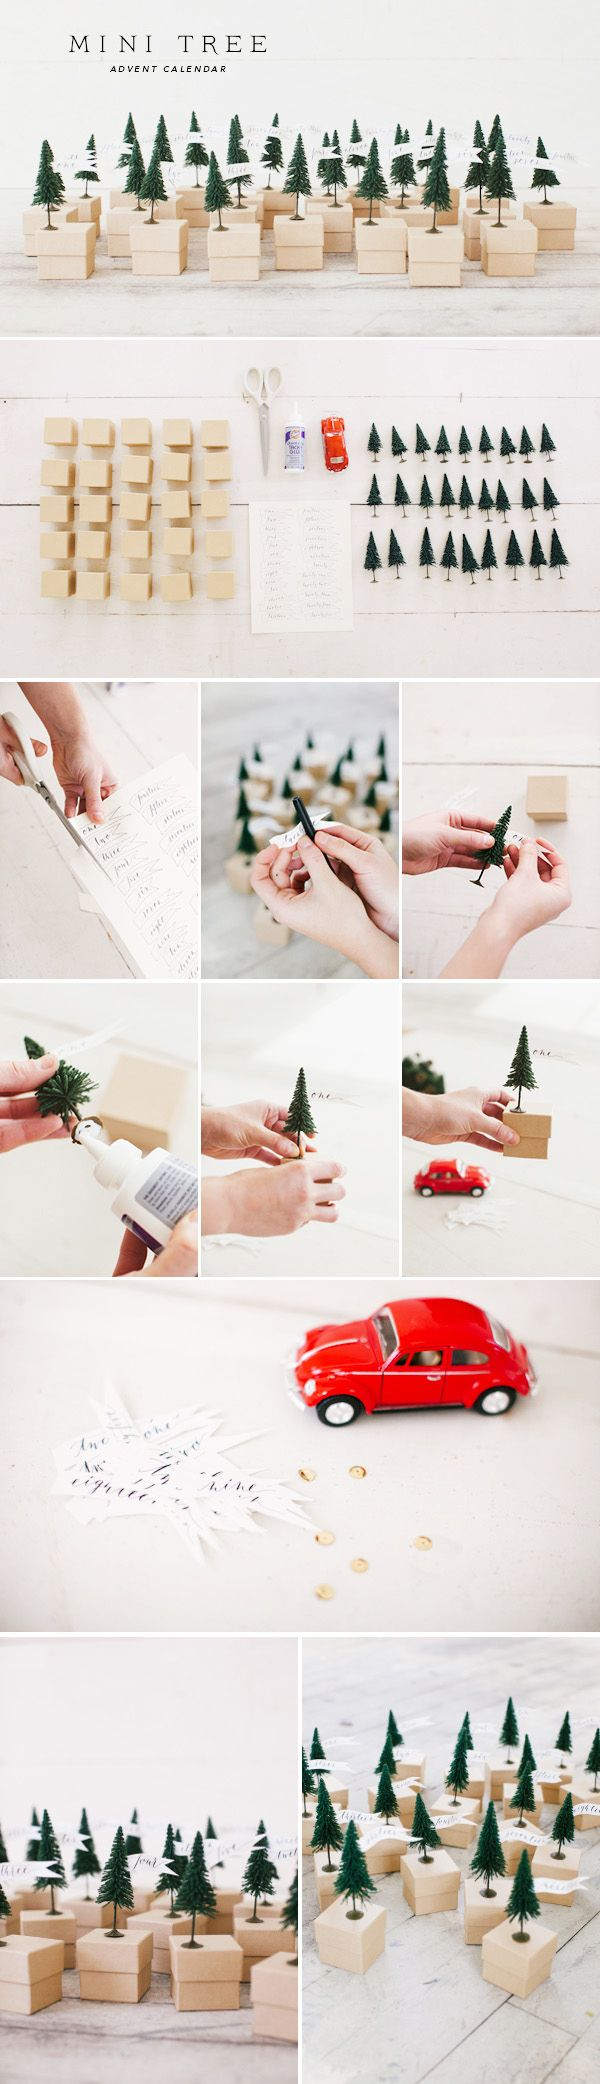 The Christmas Tree Advent Calendar http://ohhappyday.com/2012/11/mini-tree-advent-calendar-free-template/#more-15840